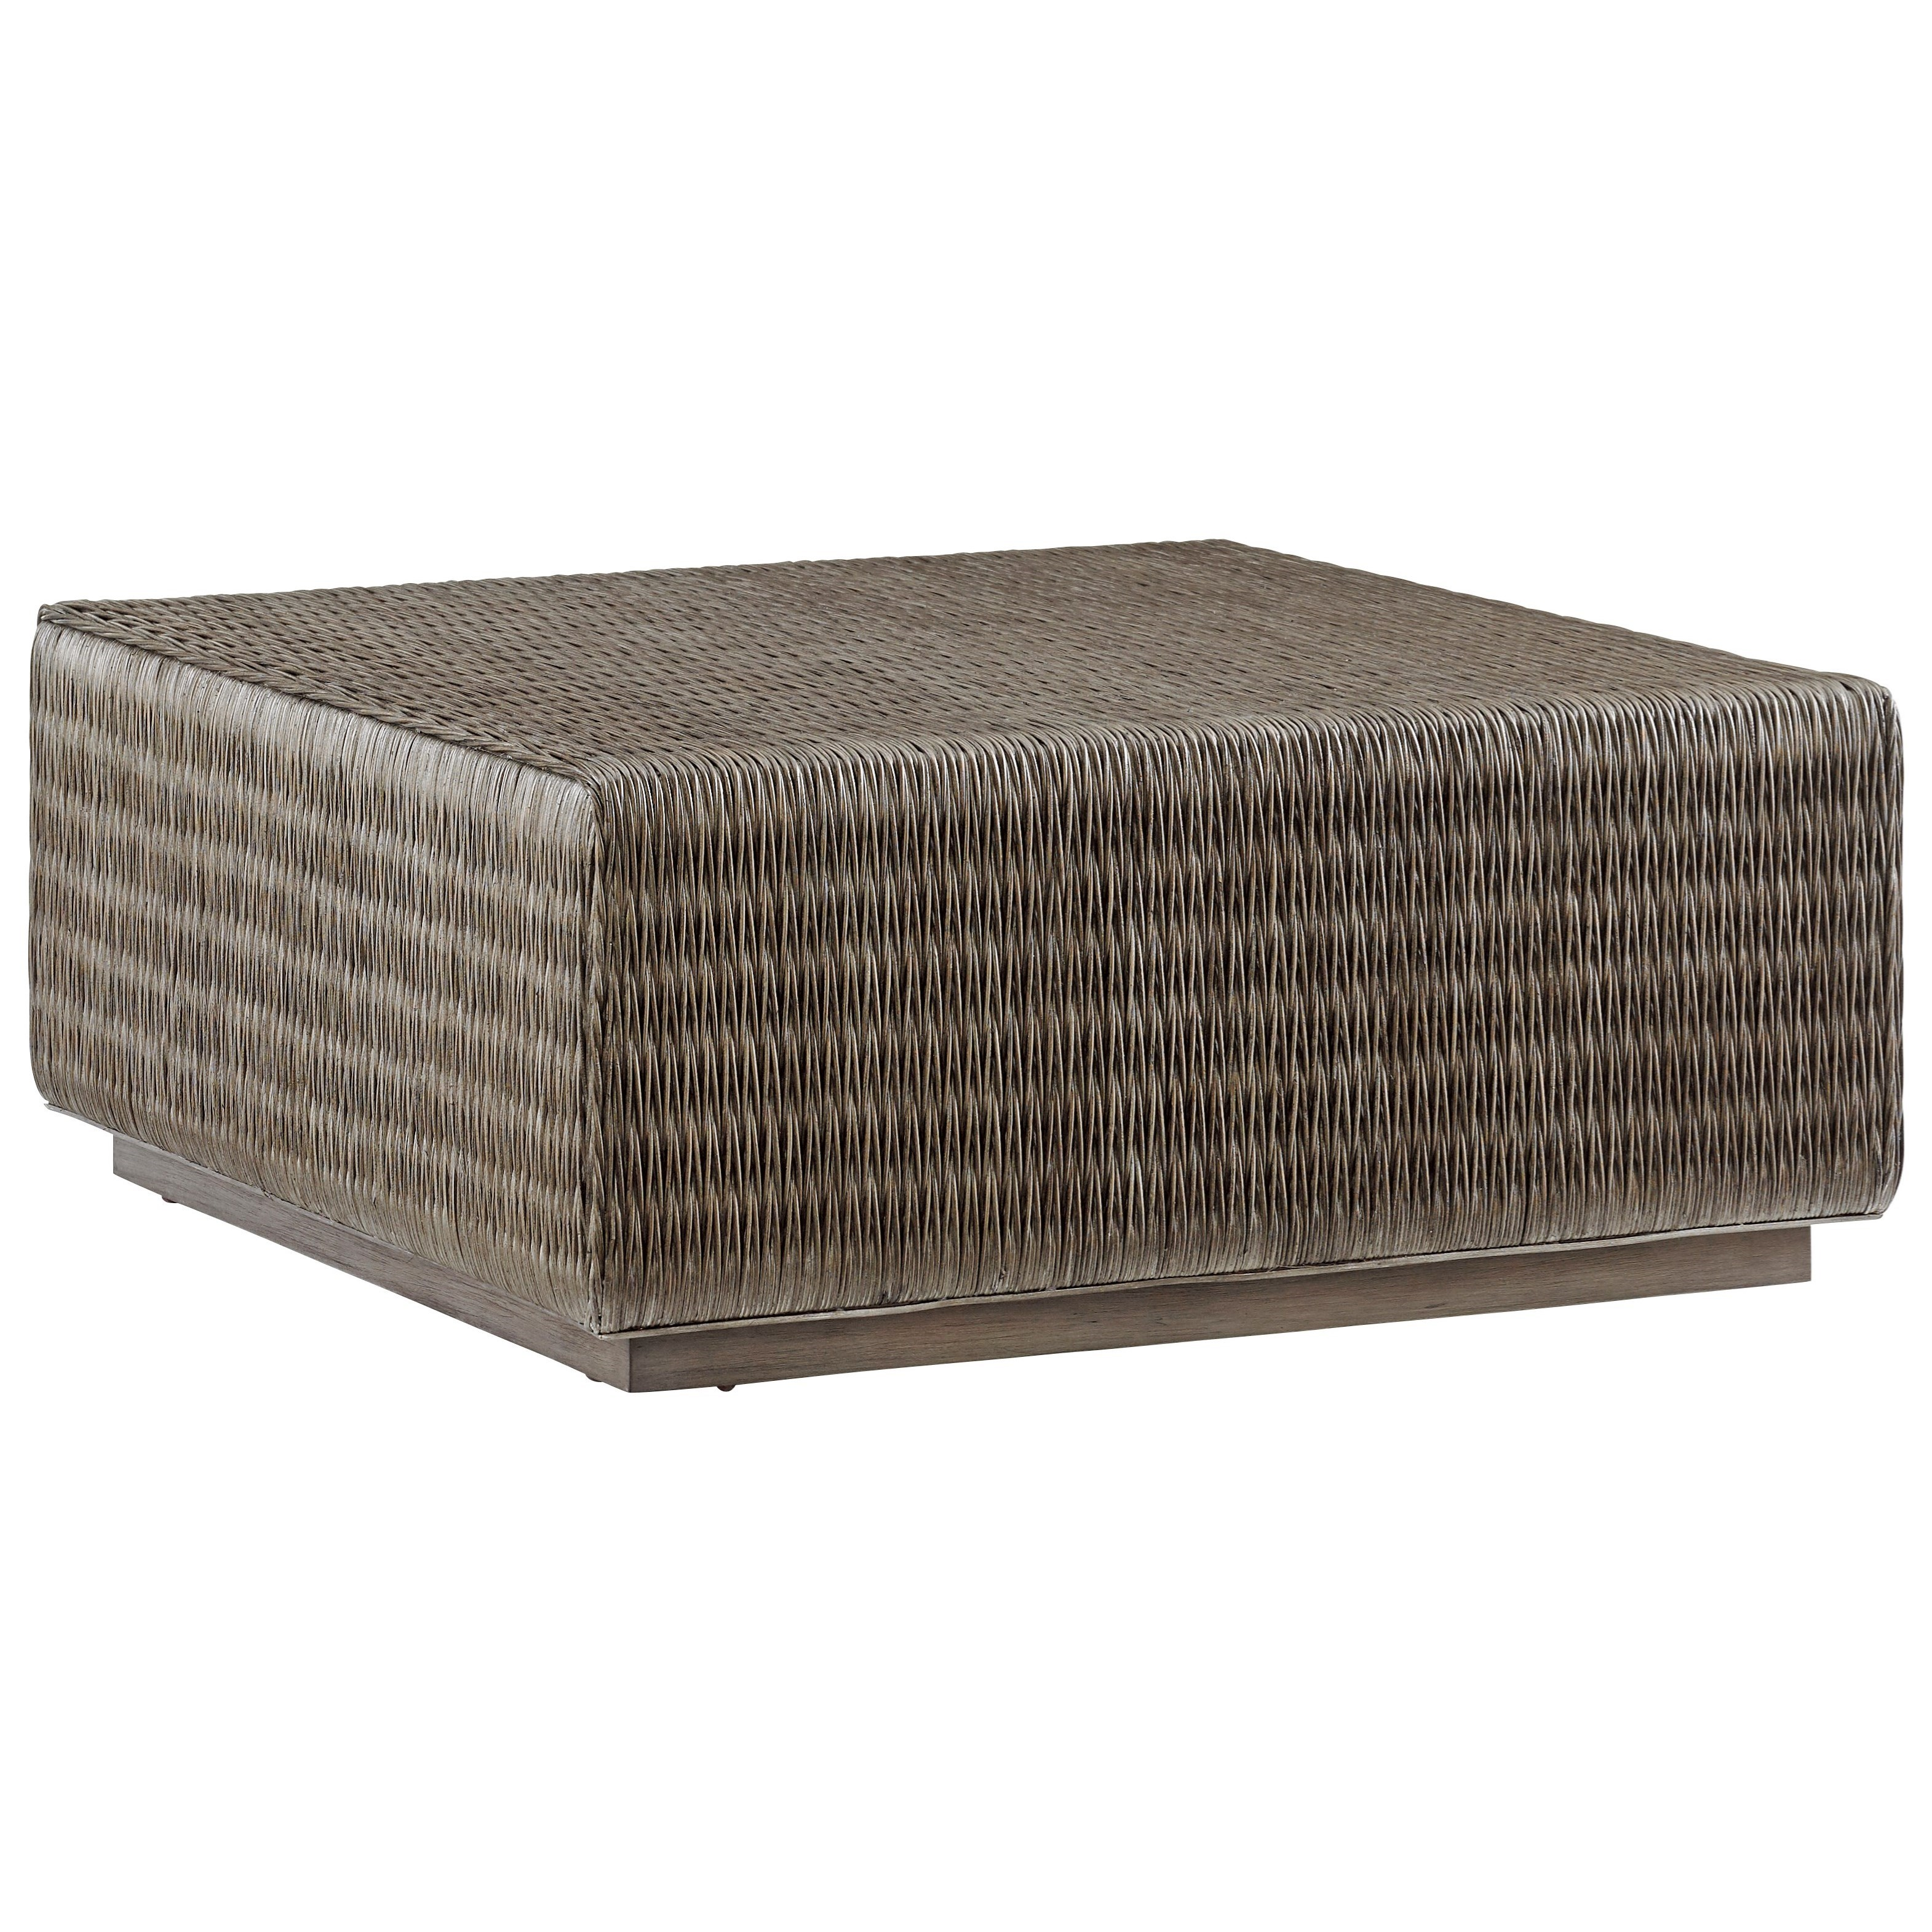 Tommy Bahama Home Cypress Point 562 947 Seawatch Woven Rattan Cocktail Table Baer 39 S Furniture